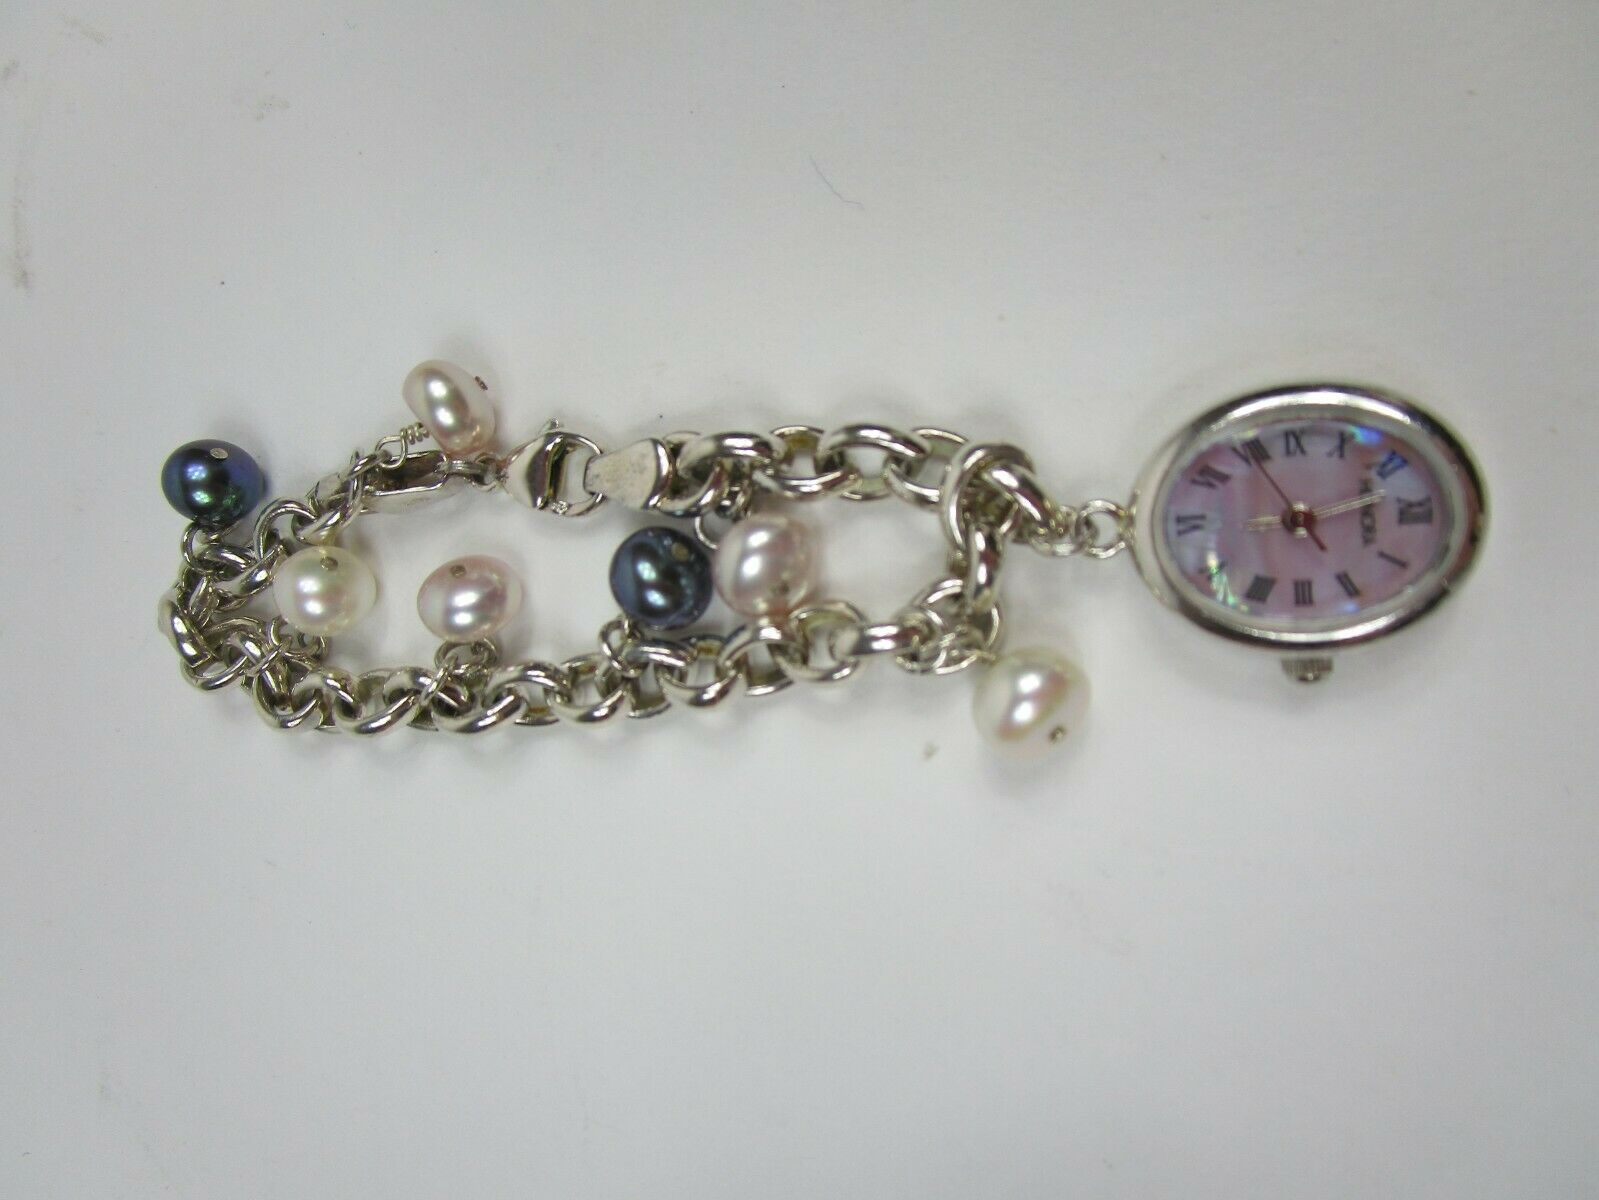 "HONORA STERLING SILVER Cable Chain Pearl Charm Mop Watch Women's BRACELET 7"" image 3"